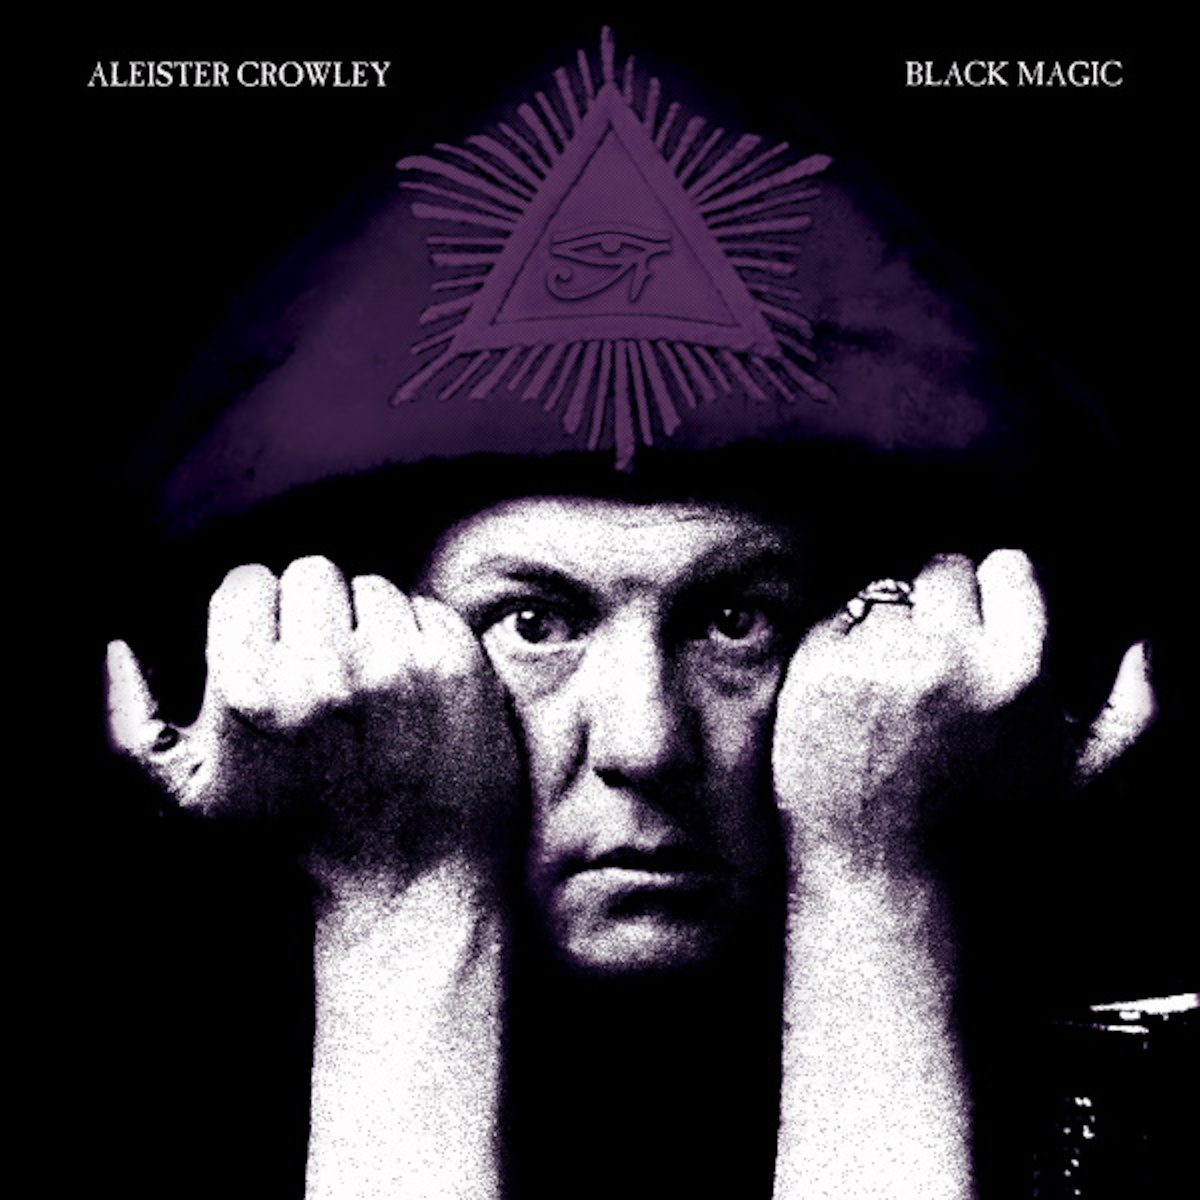 Legendary occultist Aleister Crowley gets remixed by dark electronic & witch house artists